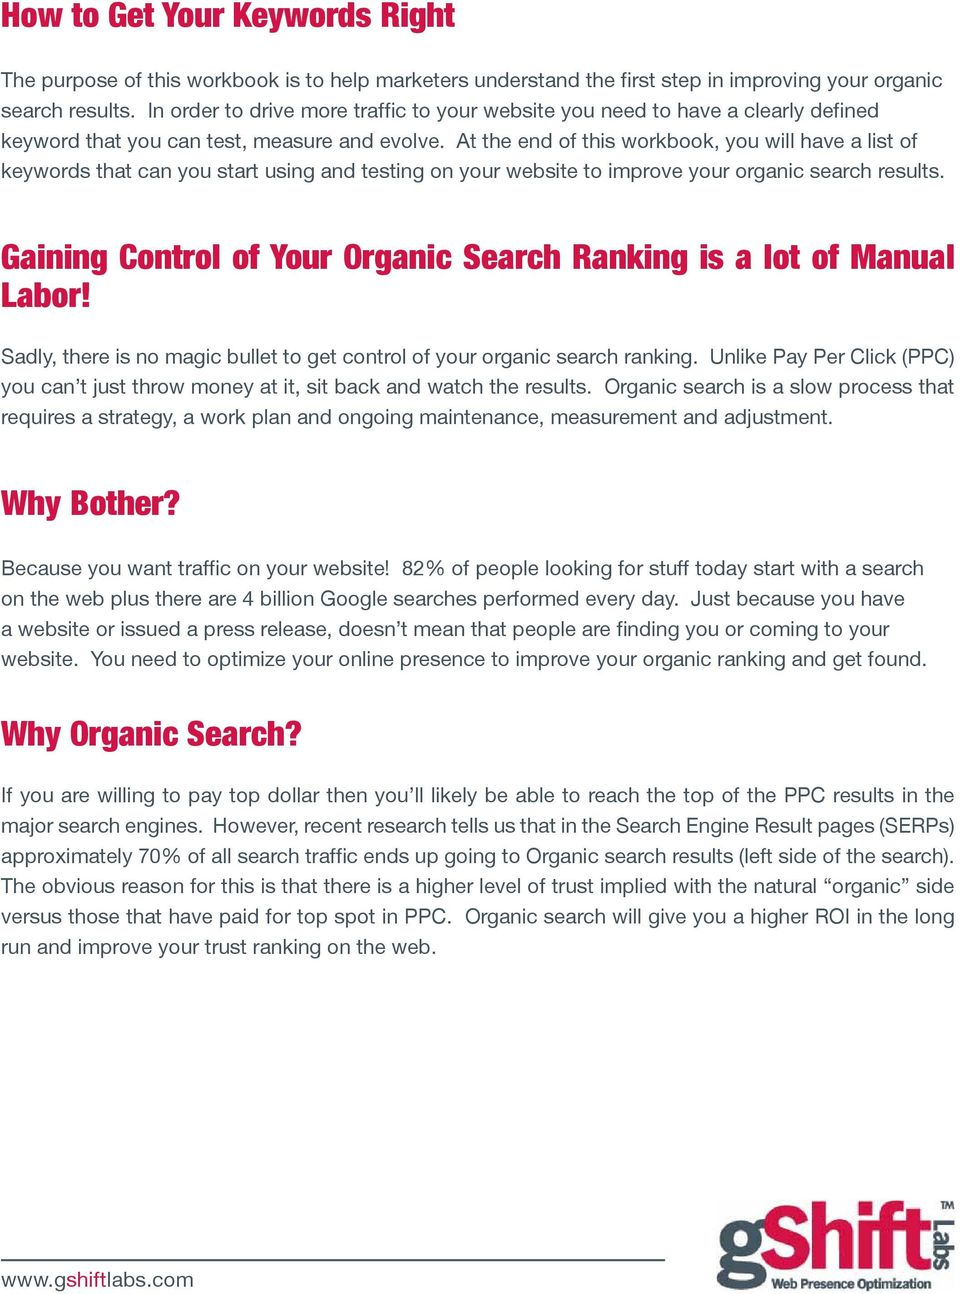 At the end of this workbook, you will have a list of keywords that can you start using and testing on your website to improve your organic search results.